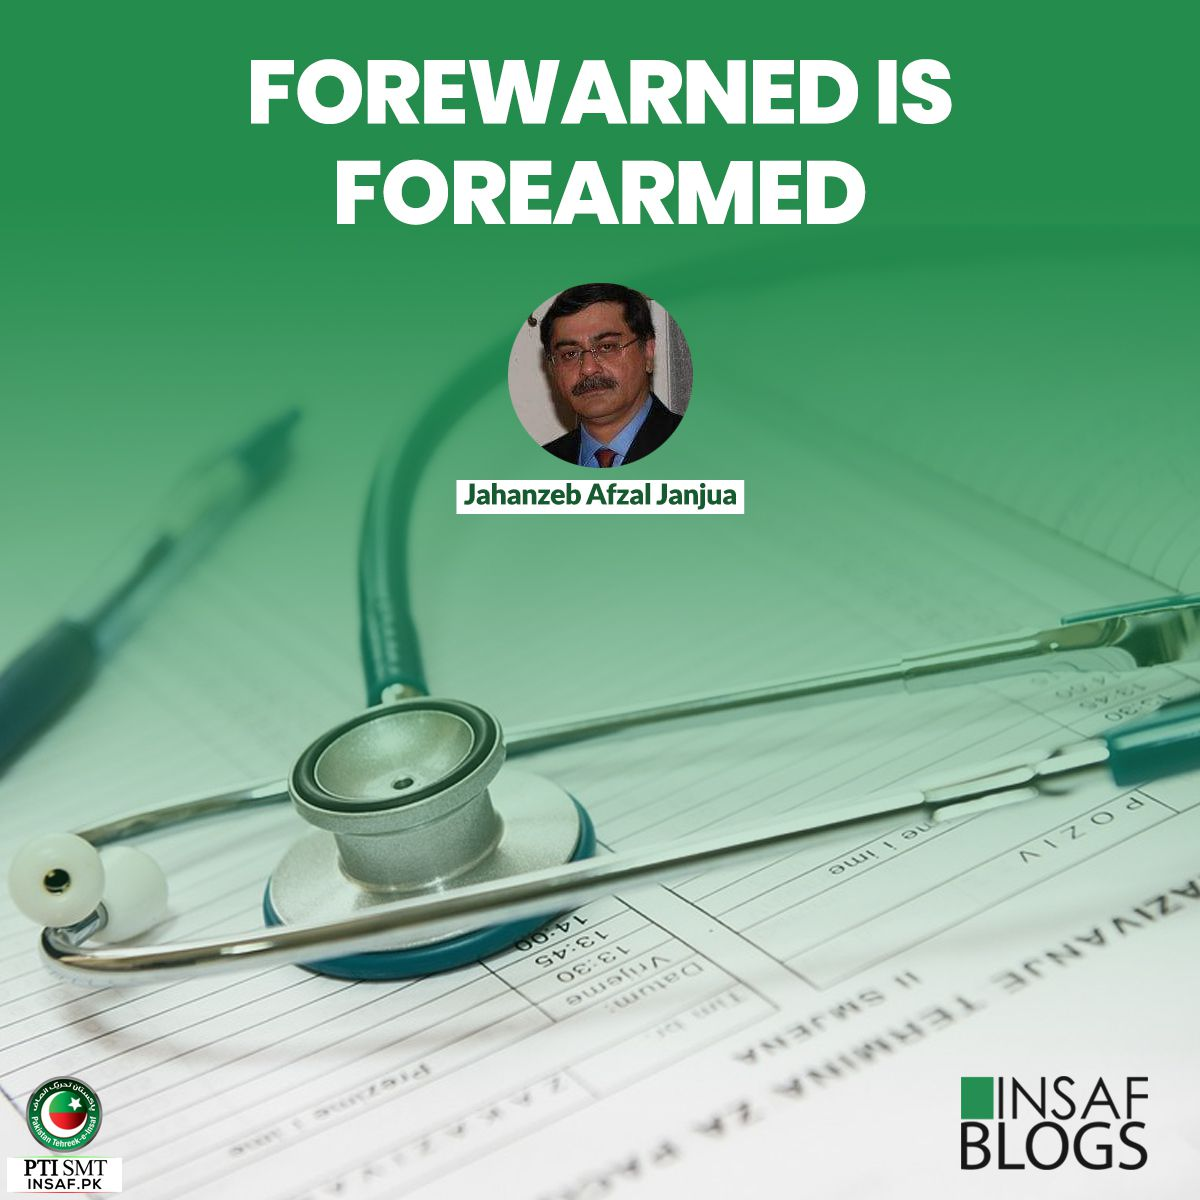 FOREWARNED IS FOREARMED Insaf Blog.